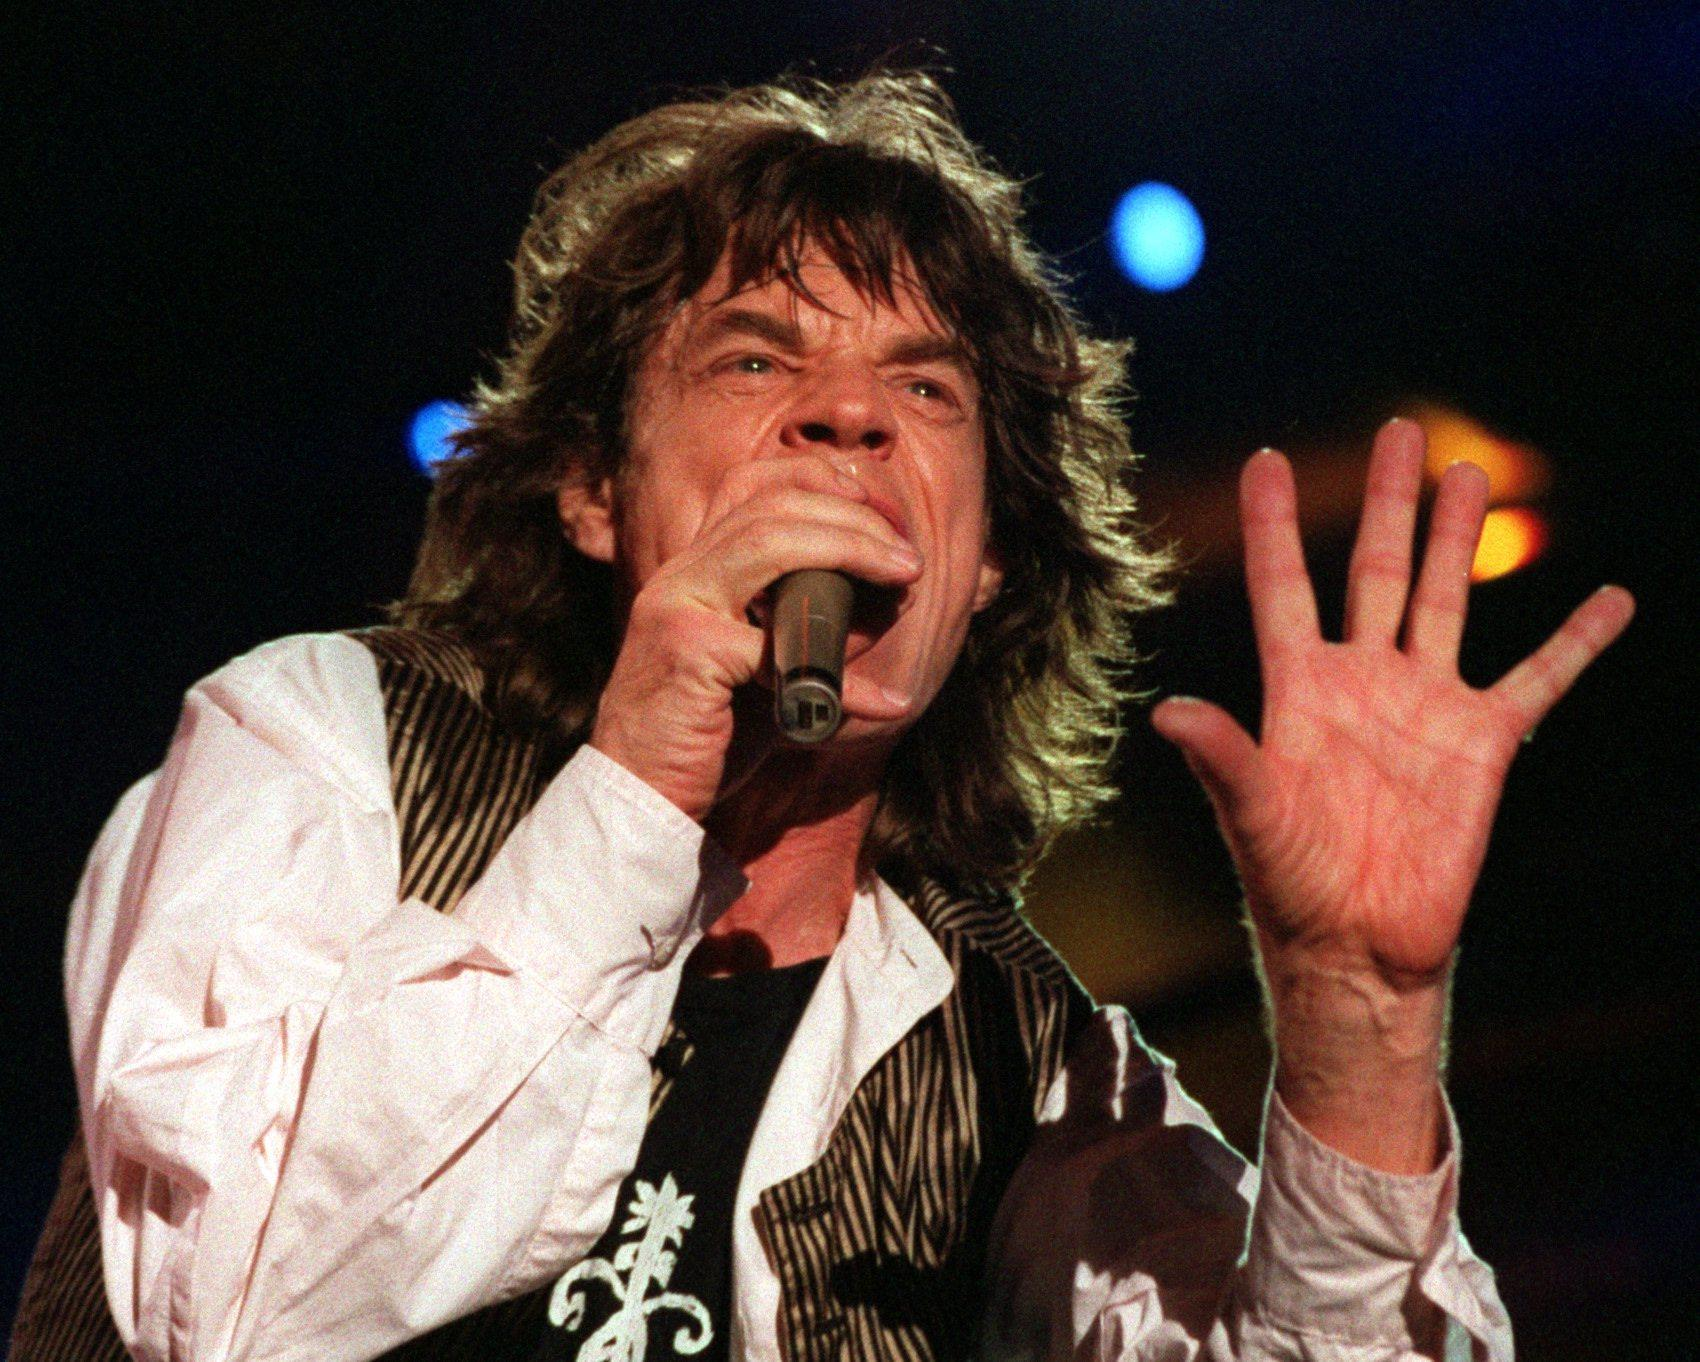 Mick Jagger releases two new, politically-charged singles